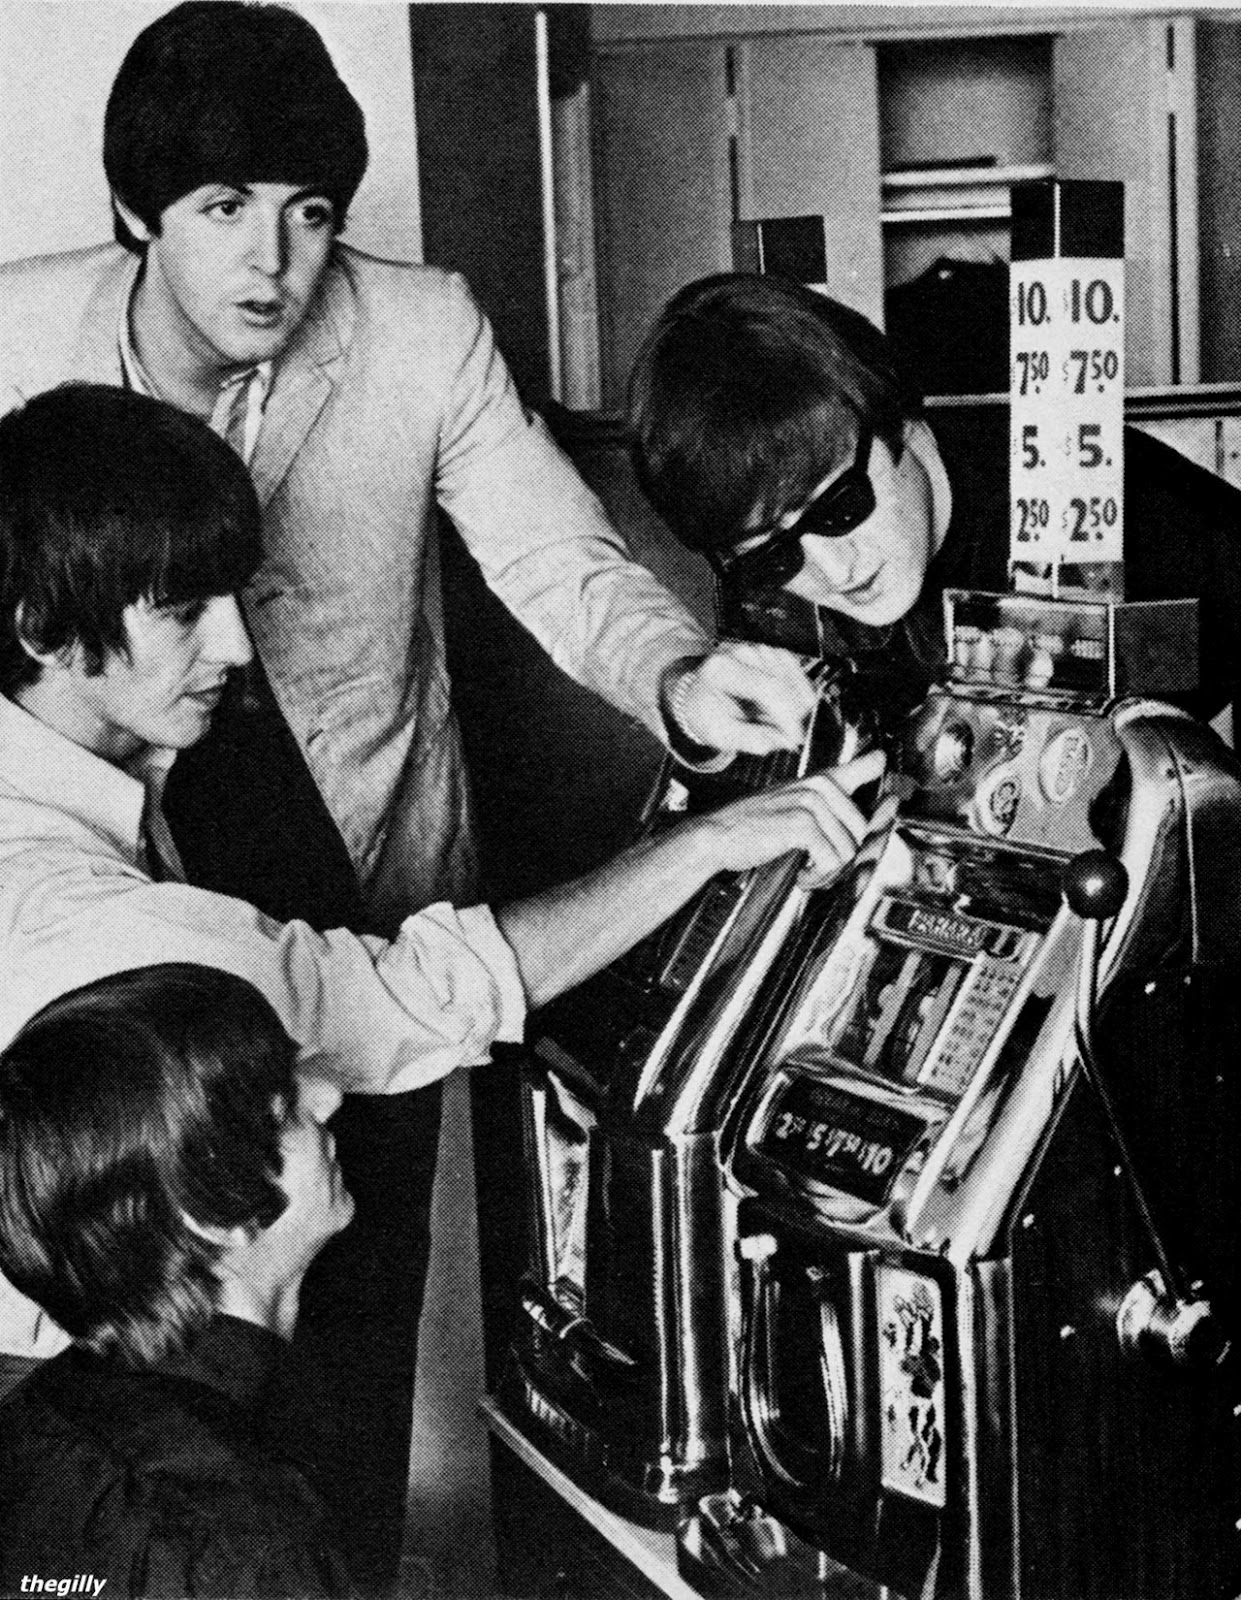 Beatles playing slot machine in Las Vegas Courtesy of the Gilly